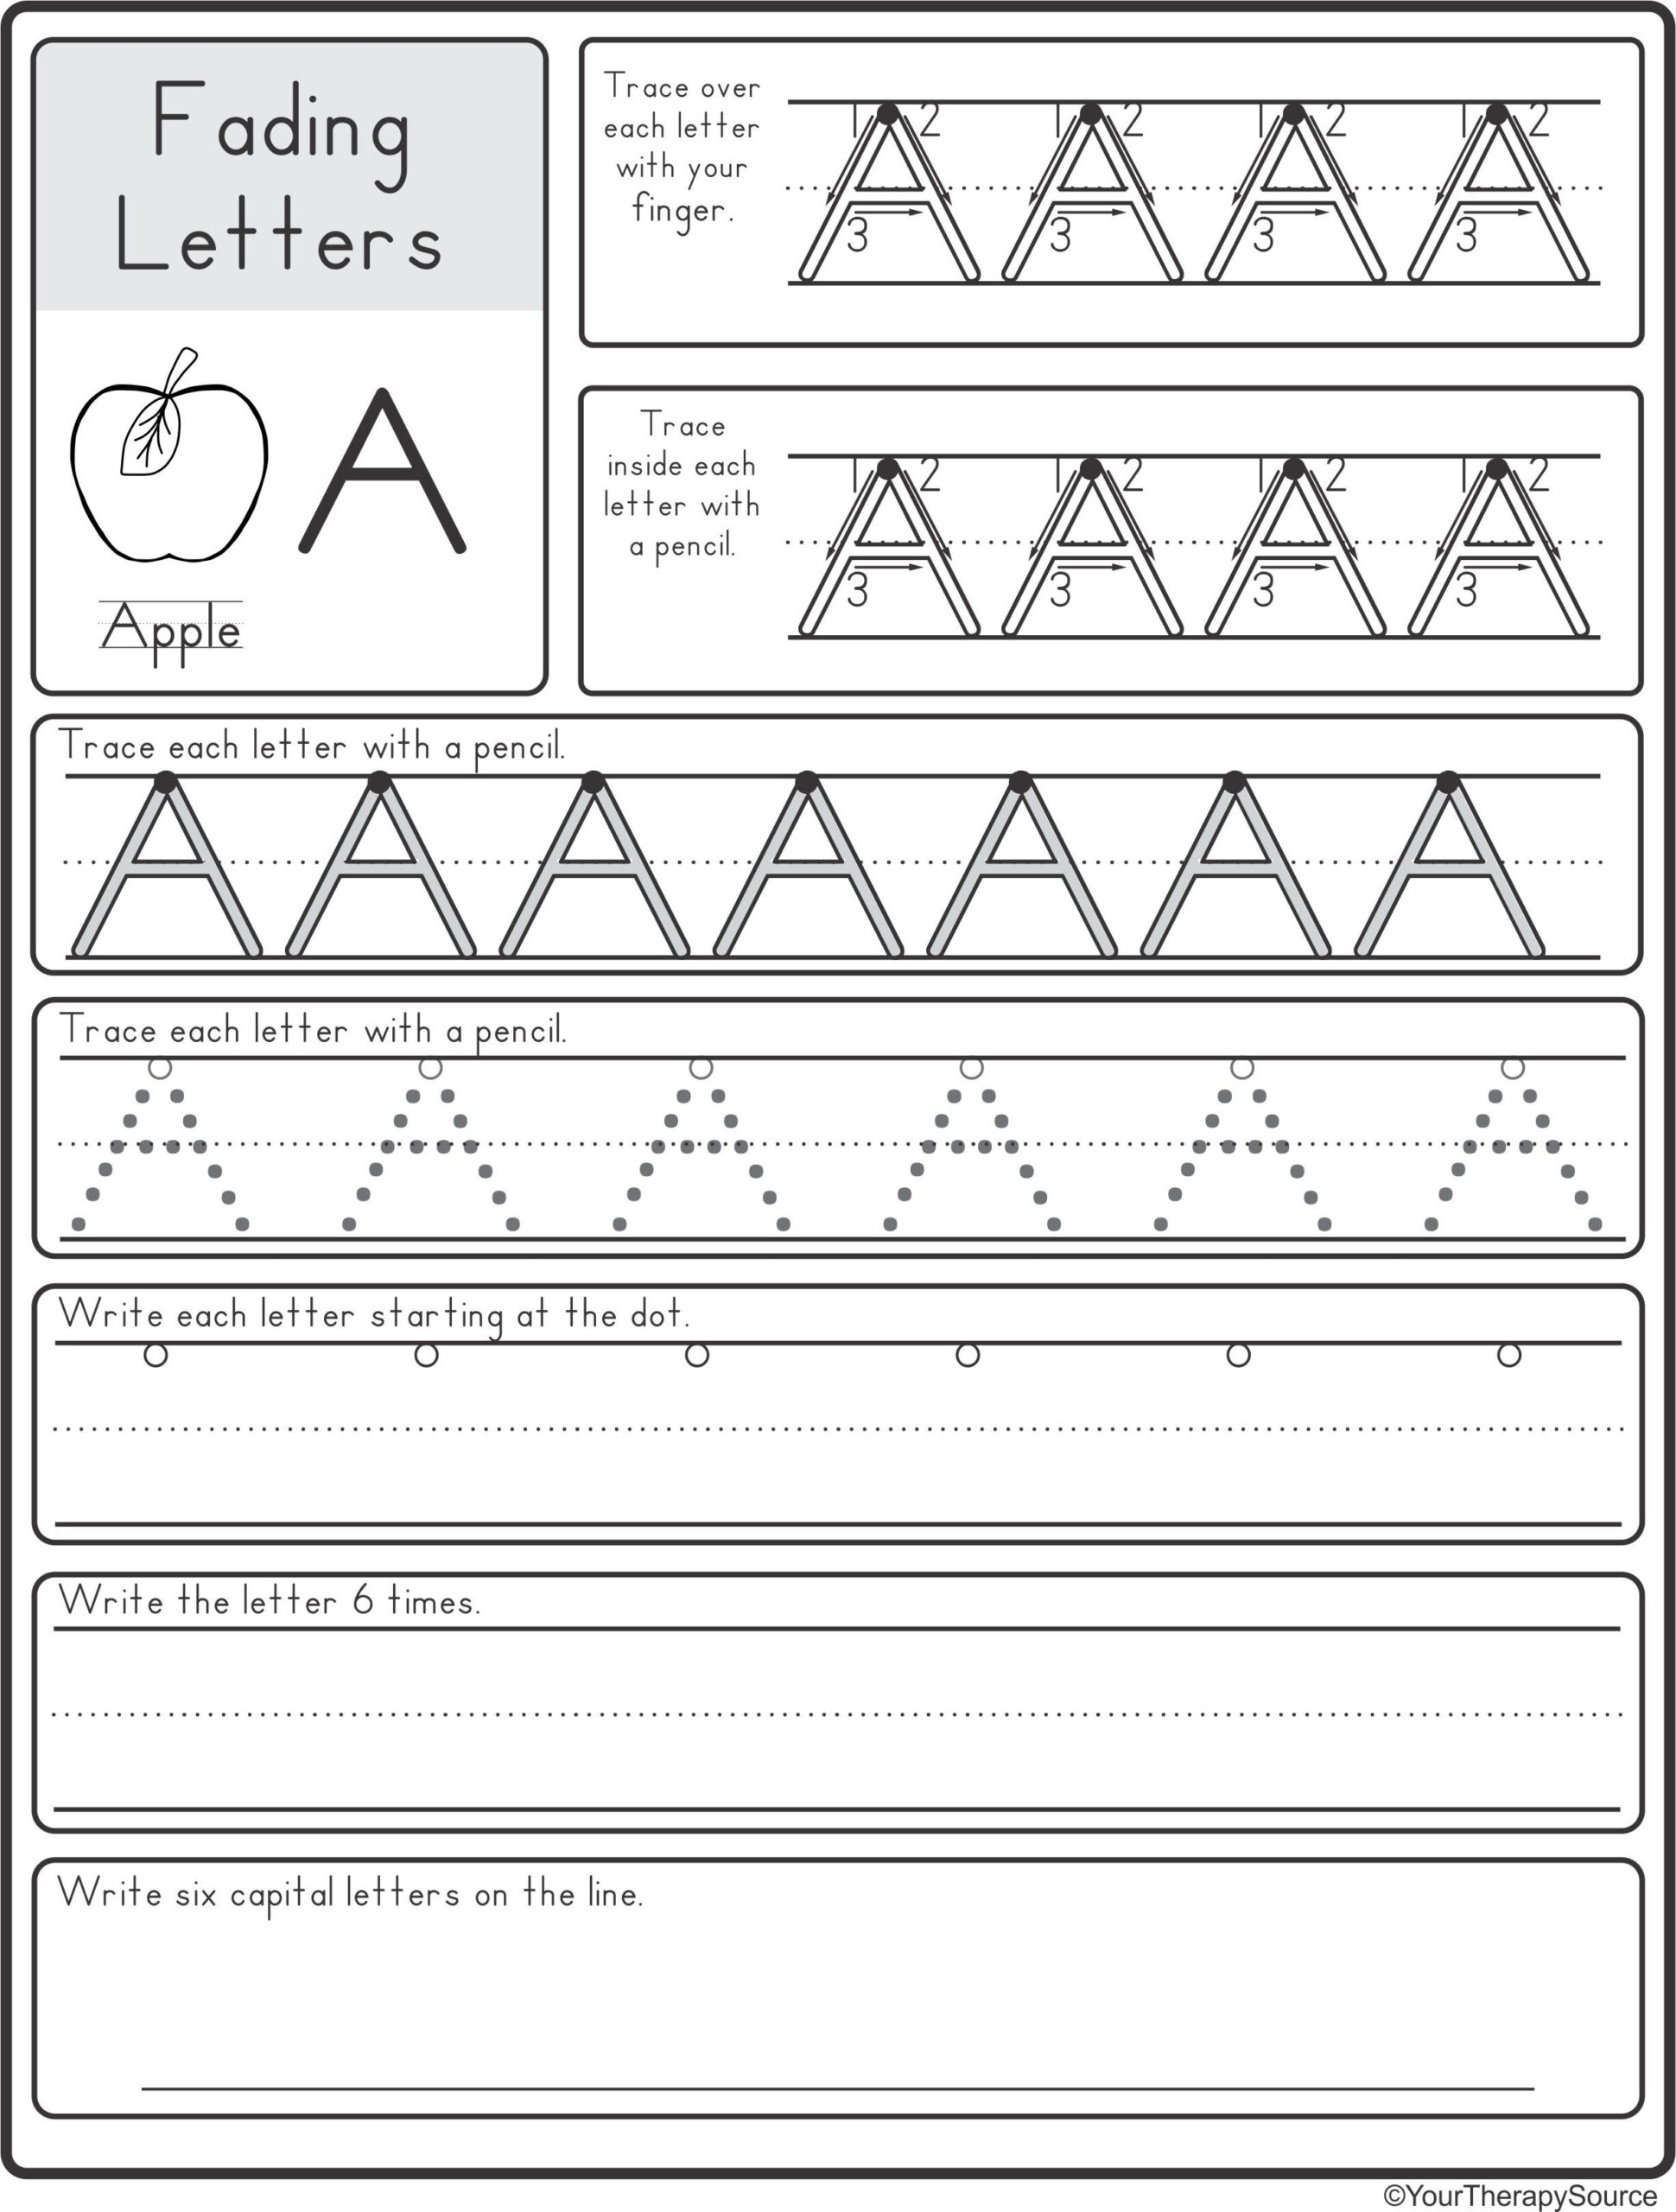 Fading Alphabet Double Line Or Dotted Line Style - Your